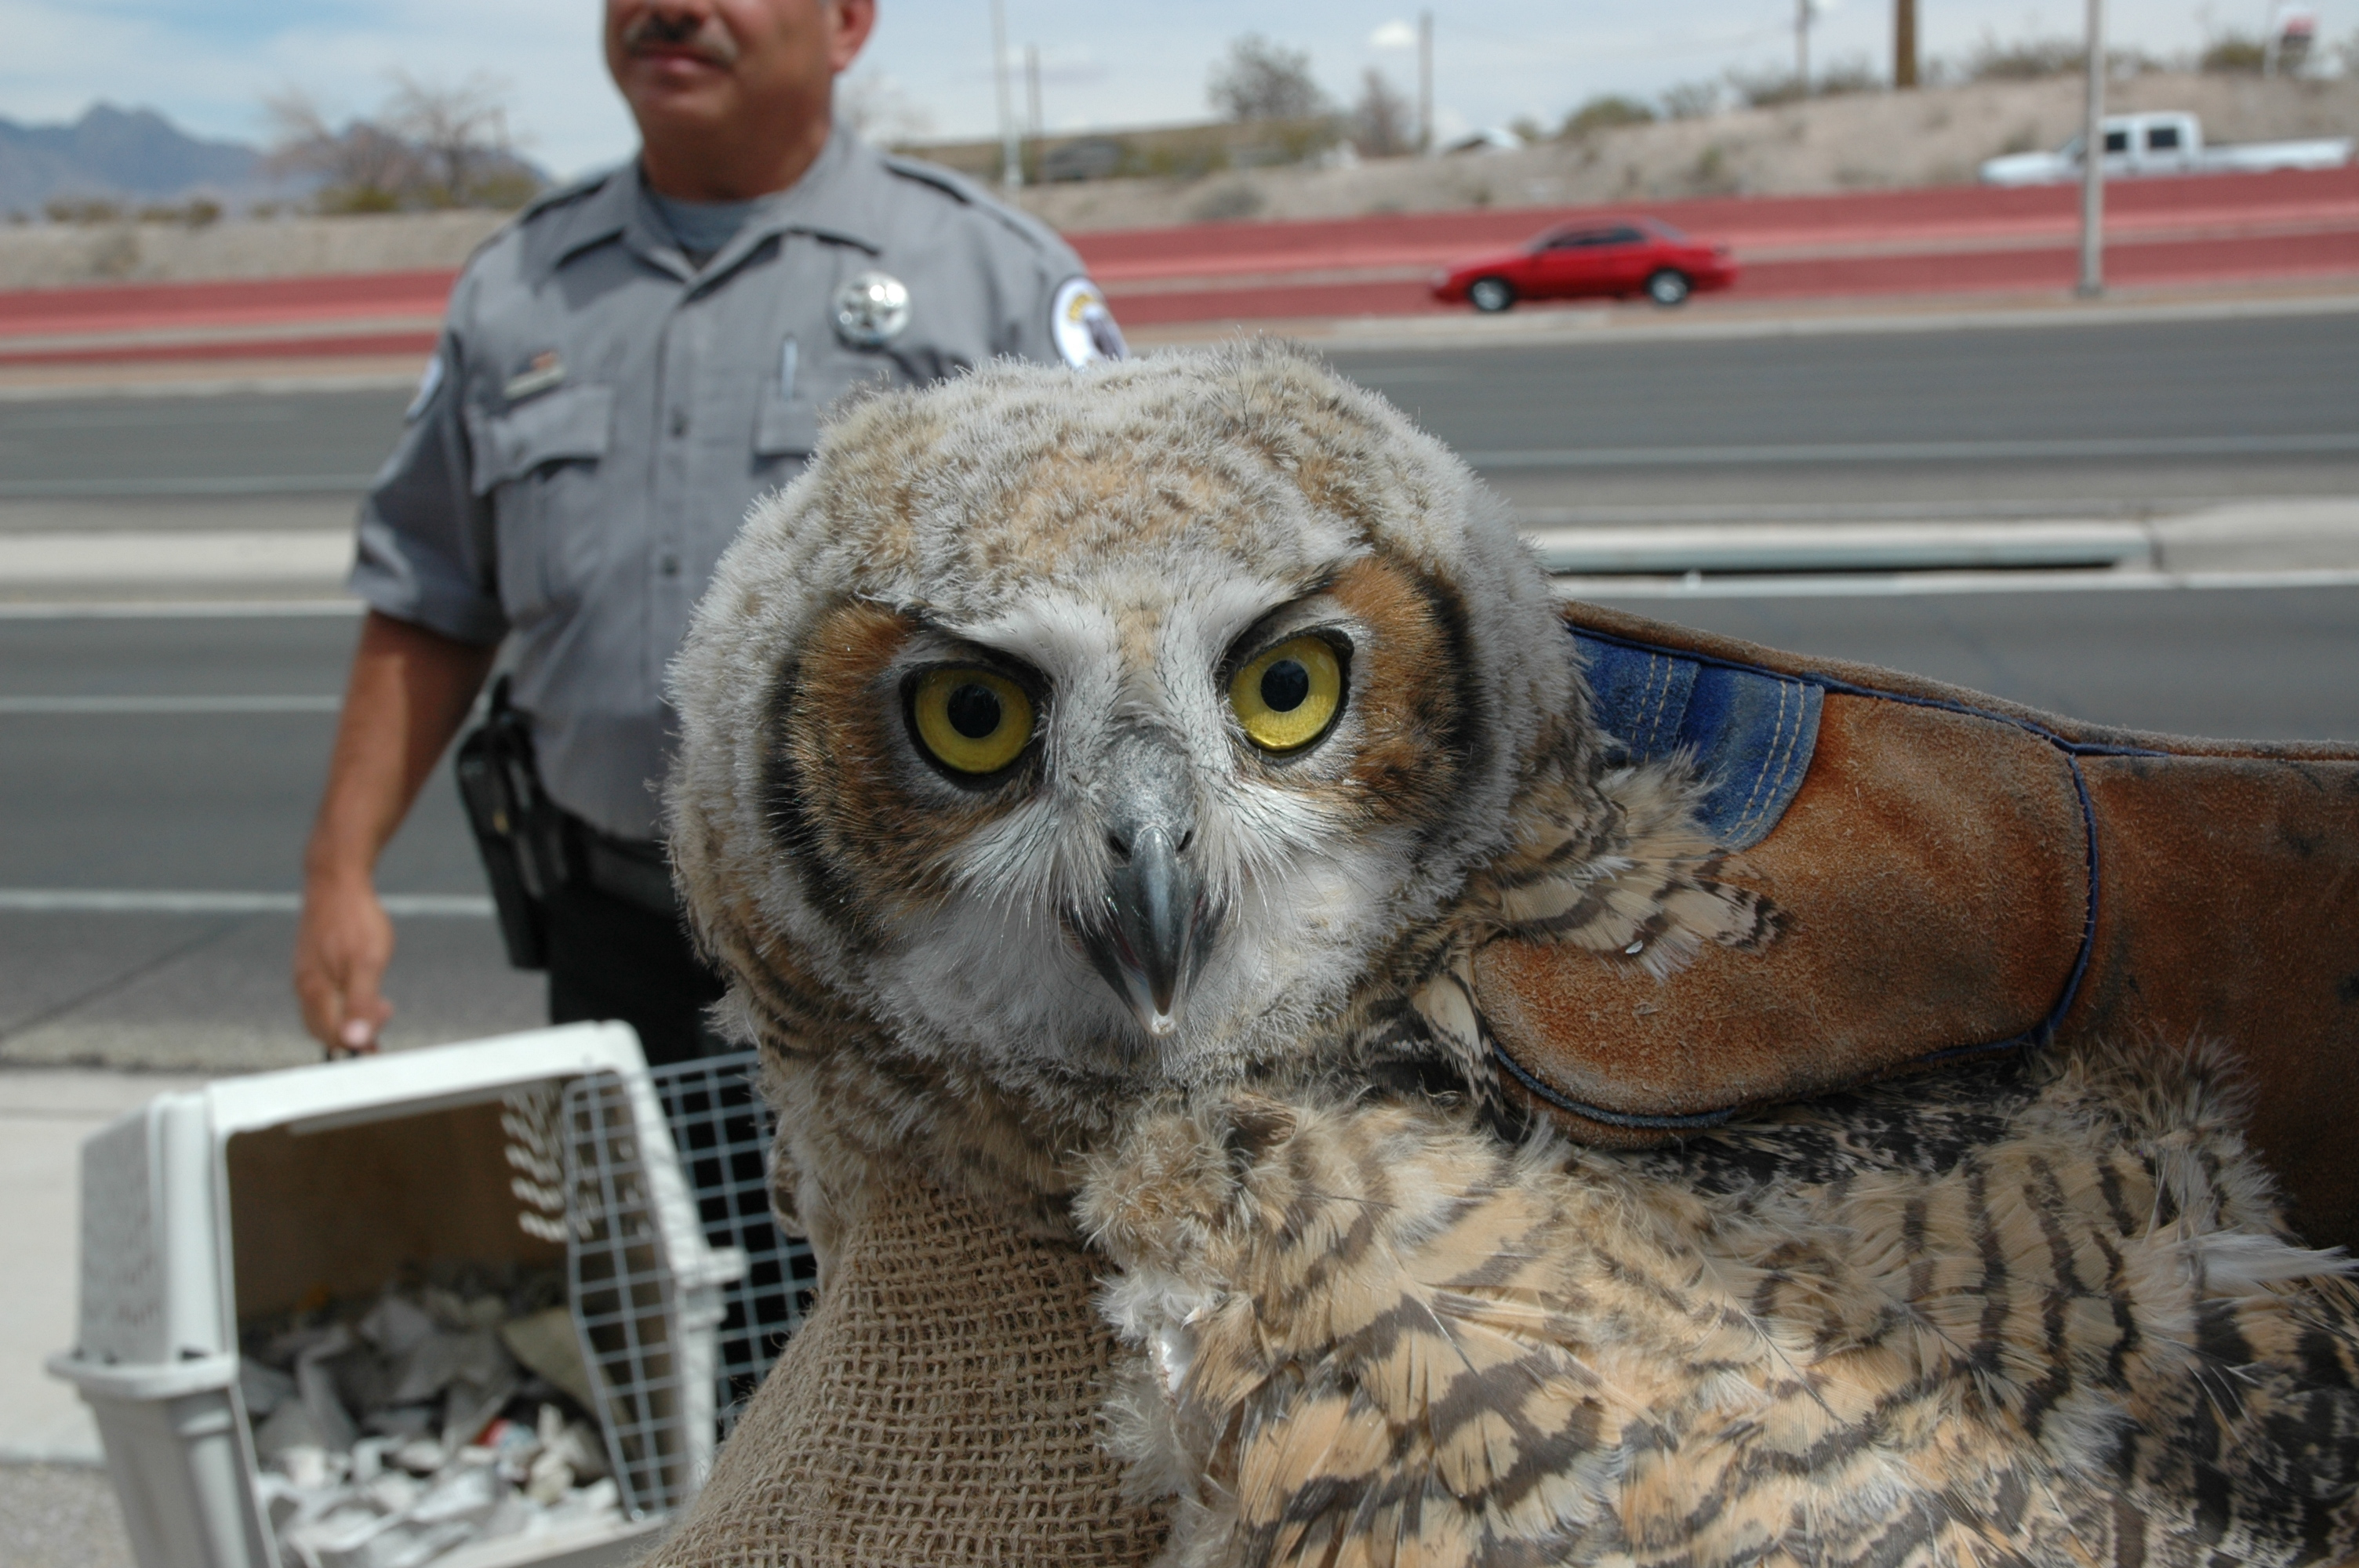 Owl rescue in las cruces krwg for Nm game and fish